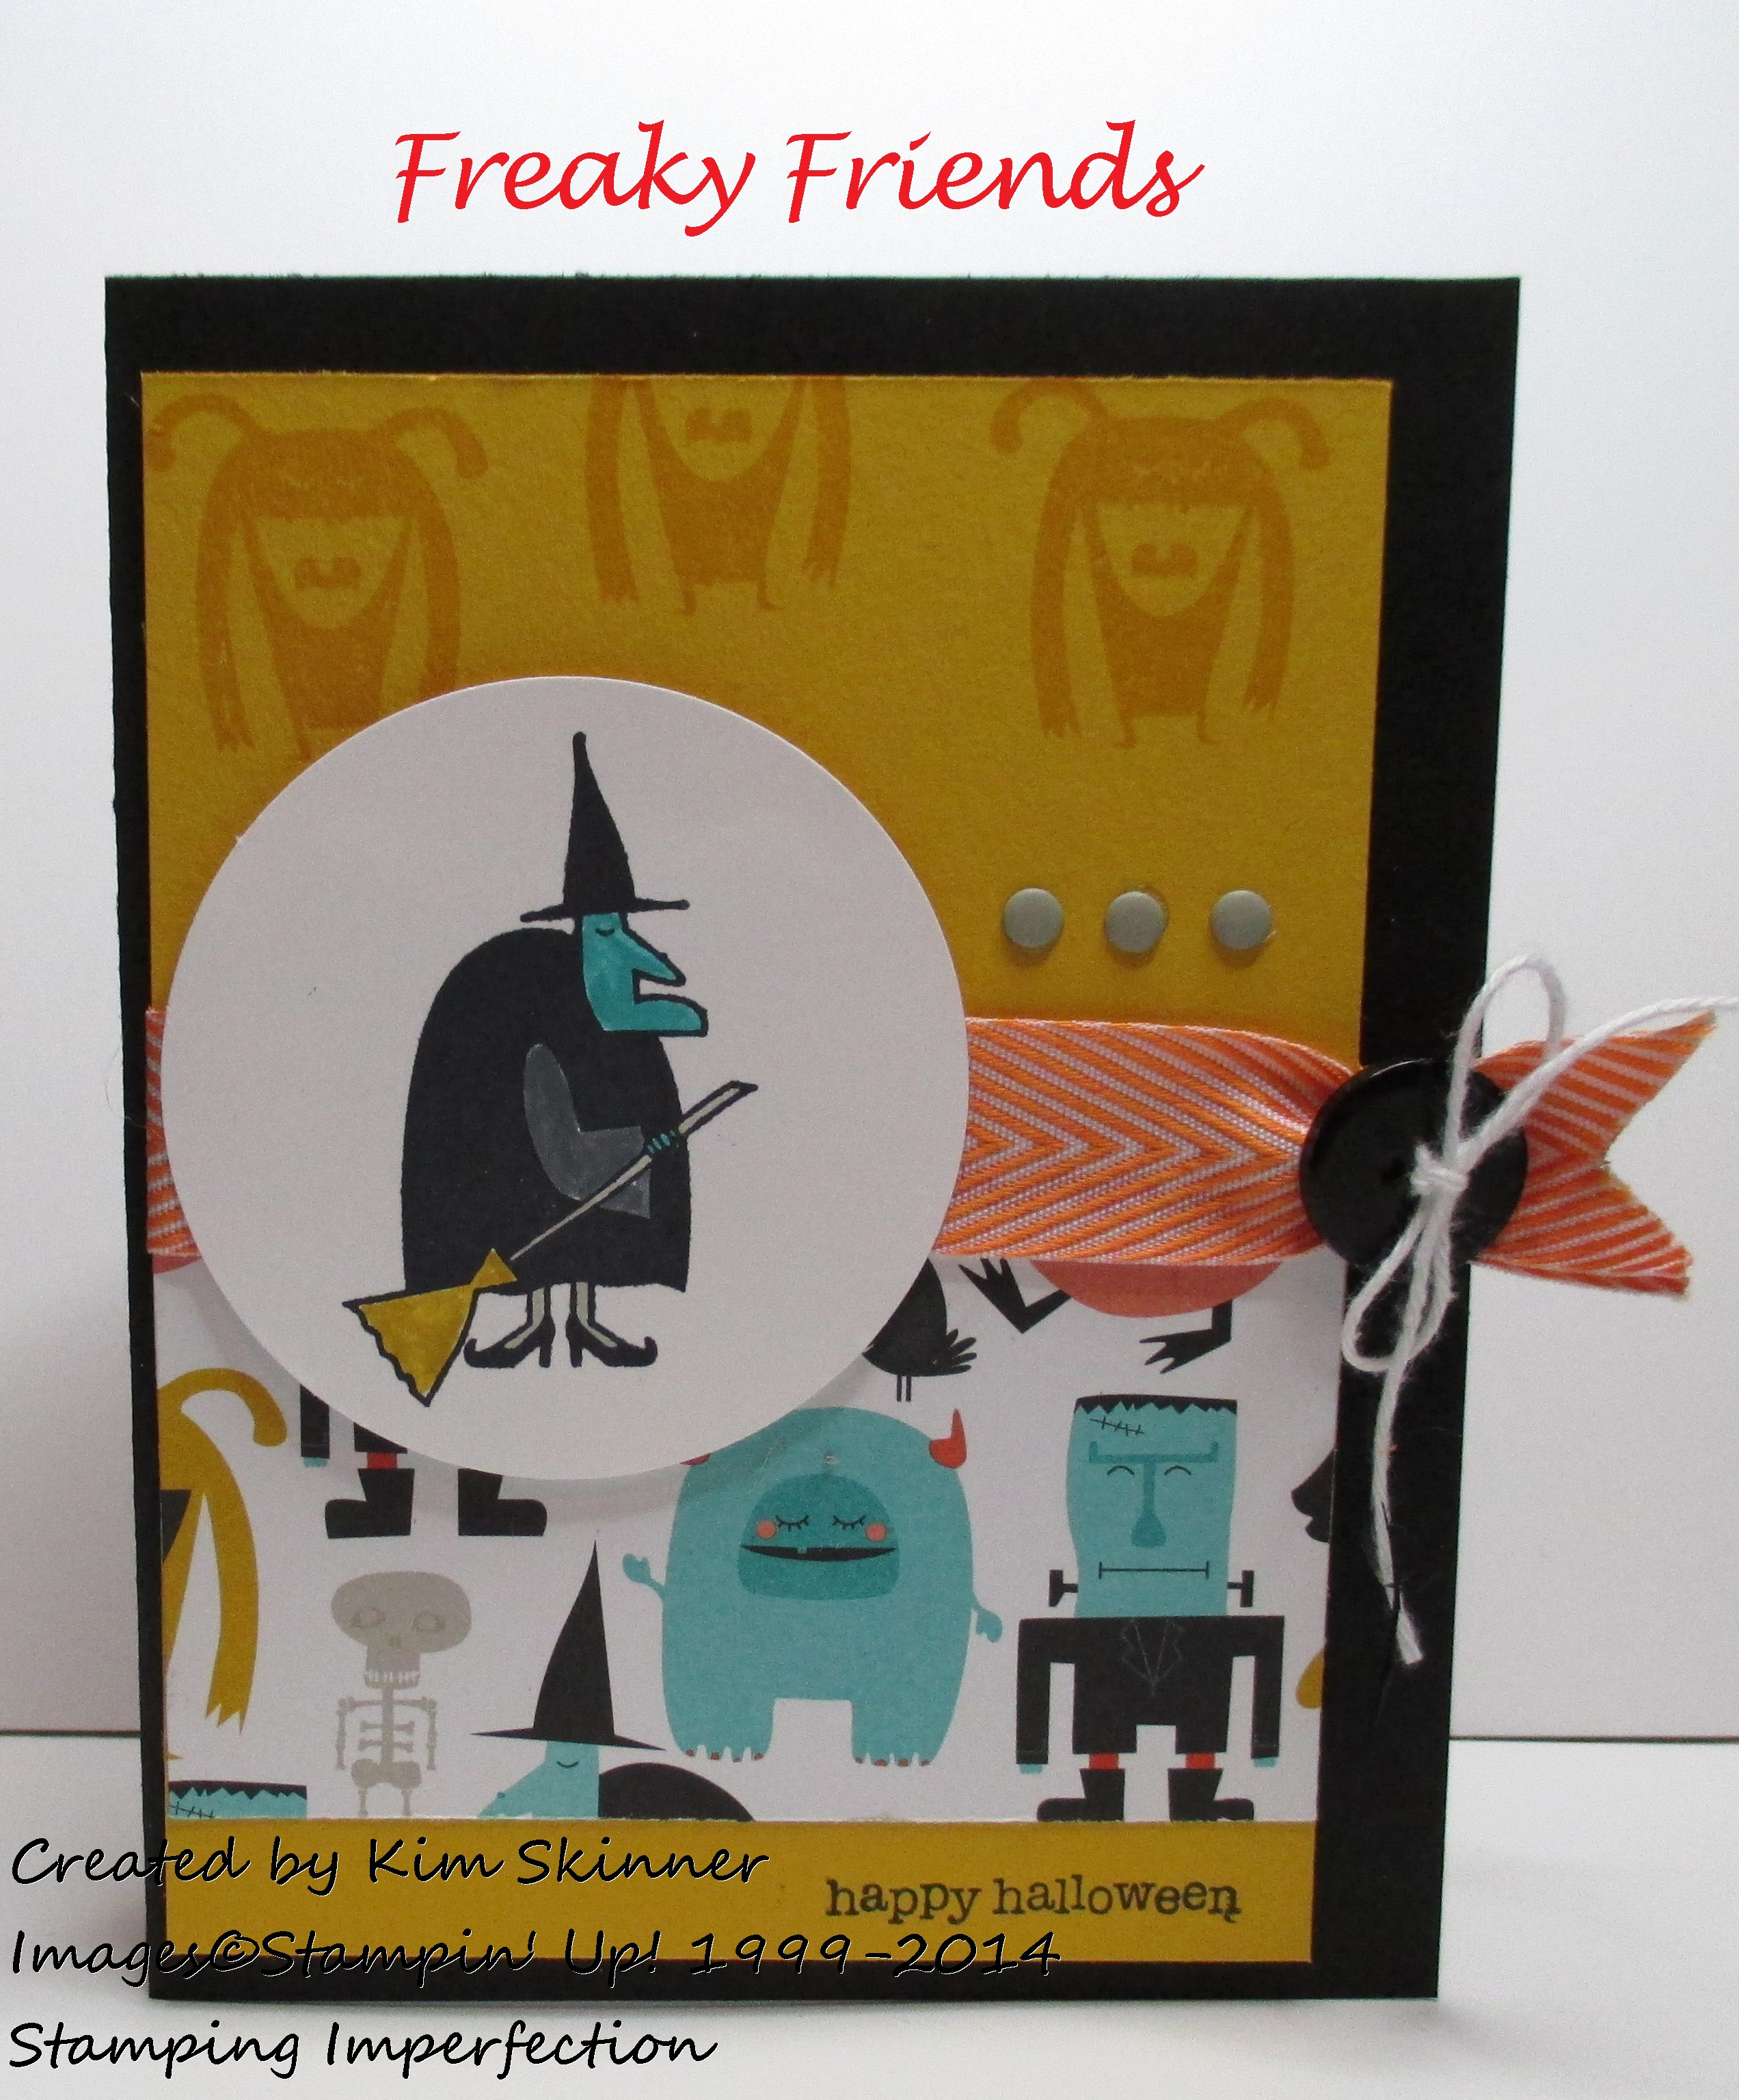 Stamping Imperfection Freaky Friends